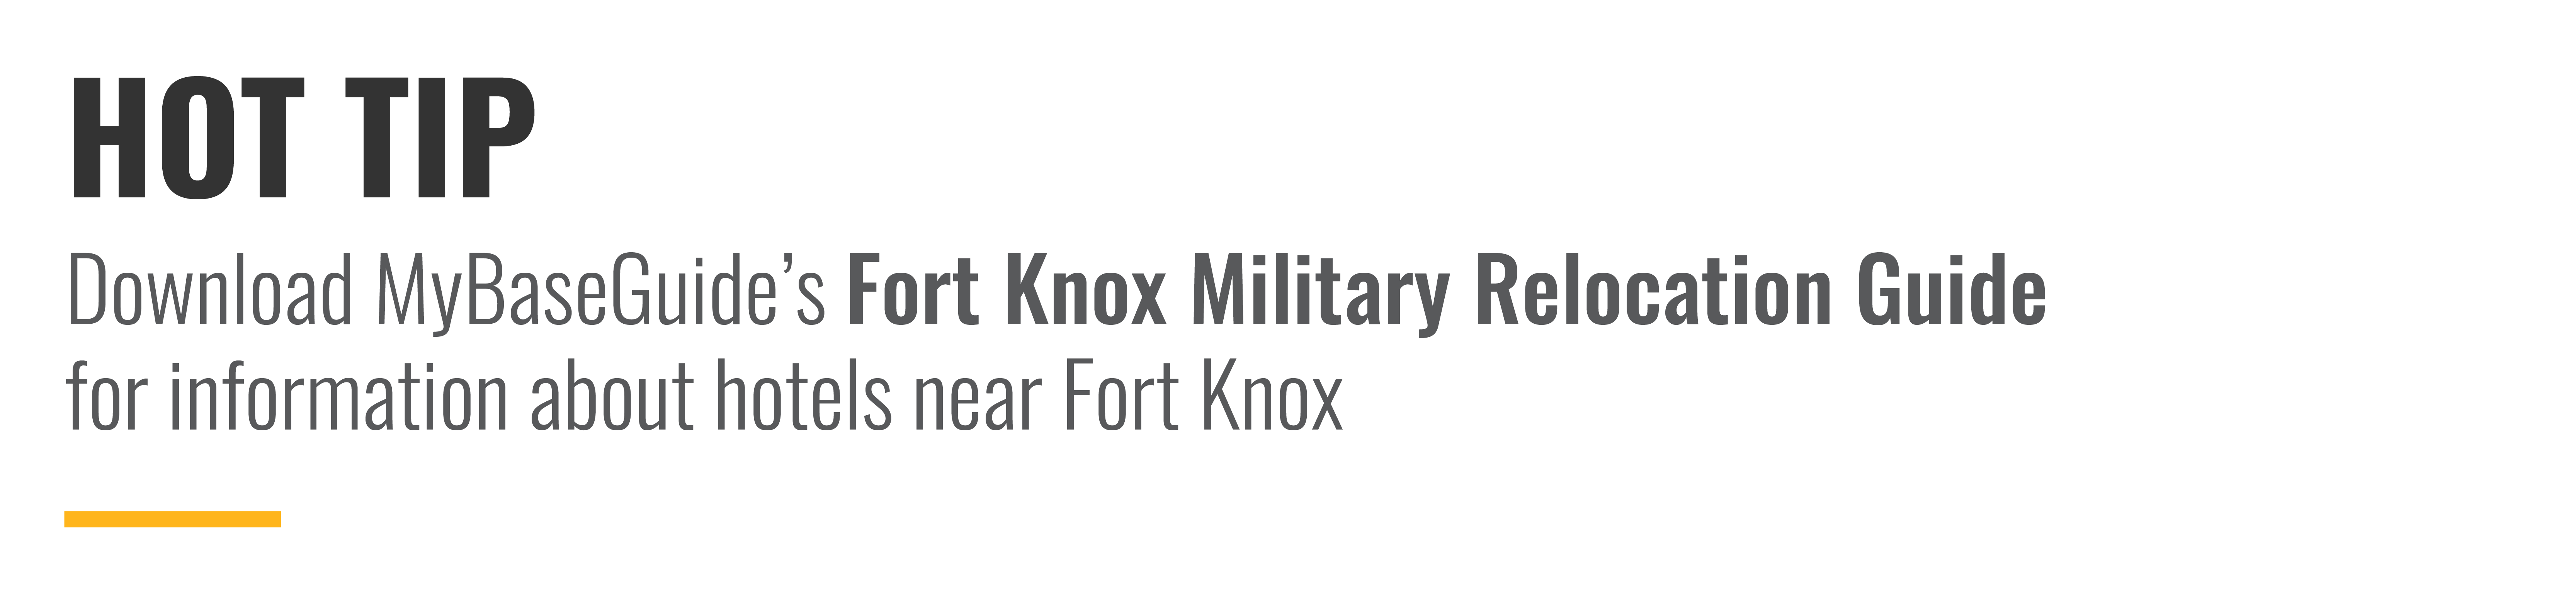 Download MyBaseGuide's Fort Knox Military Relocation Guide for information about hotels near Fort Knox.